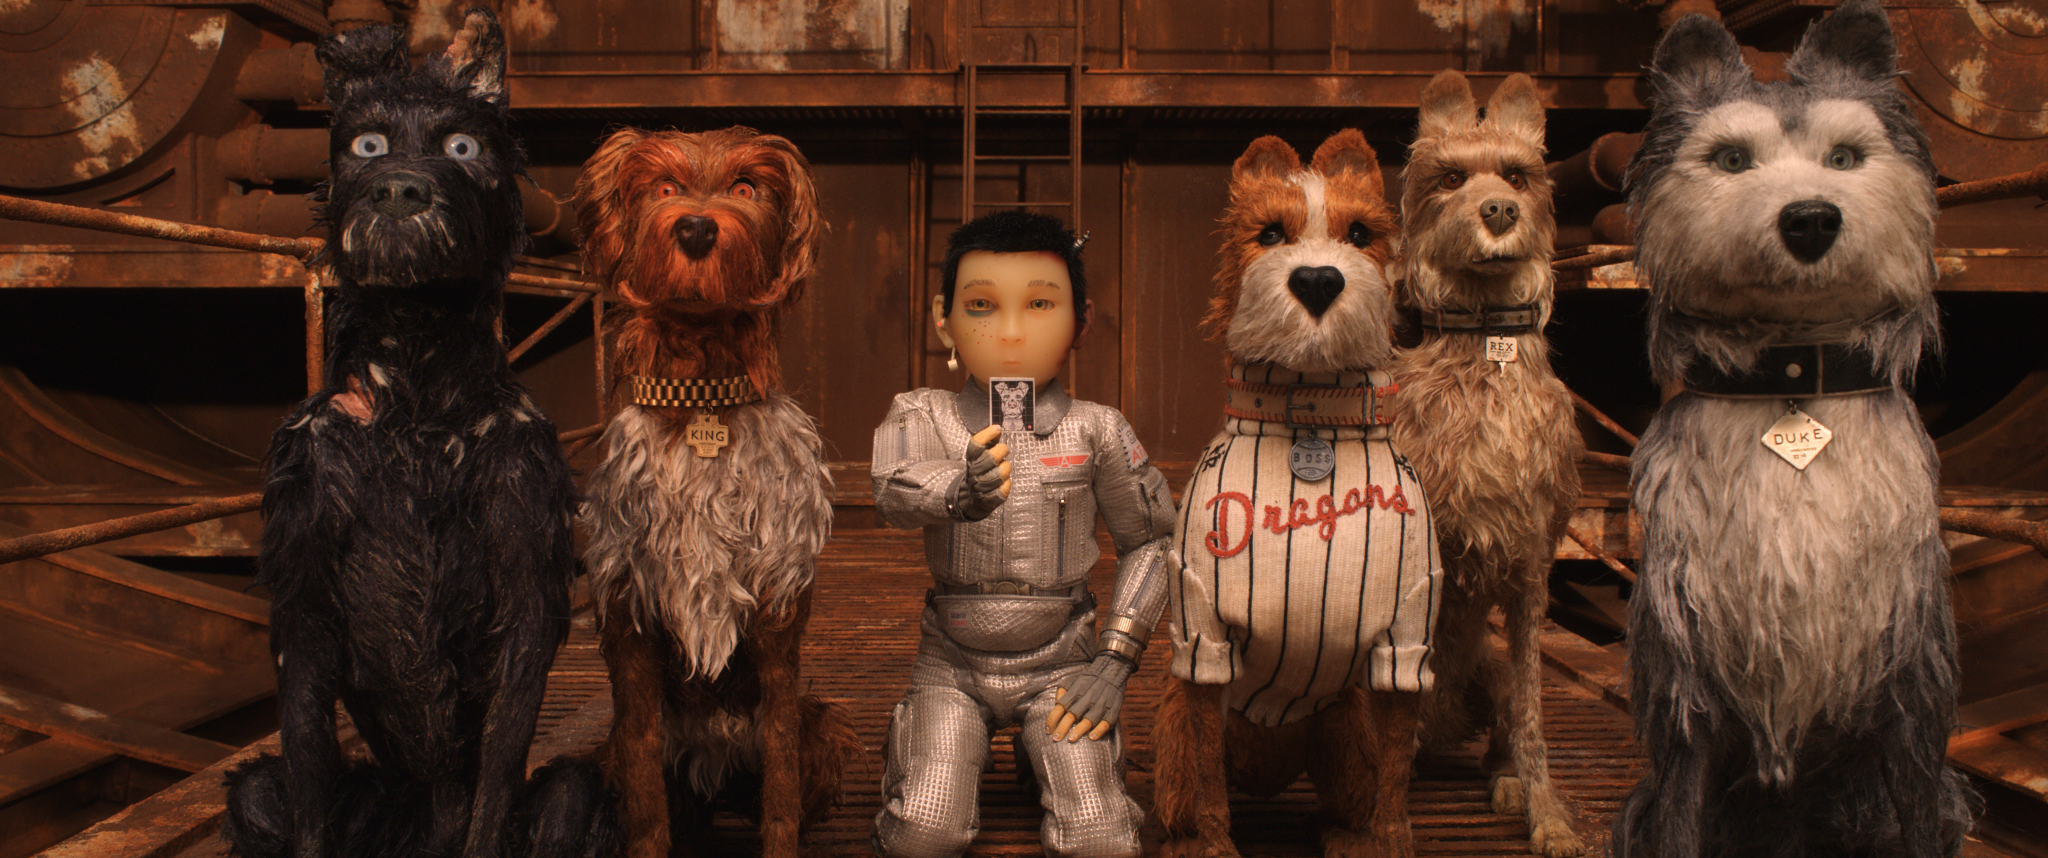 Figure 1: The gang's all here: Isle of Dogs by Wes Anderson.